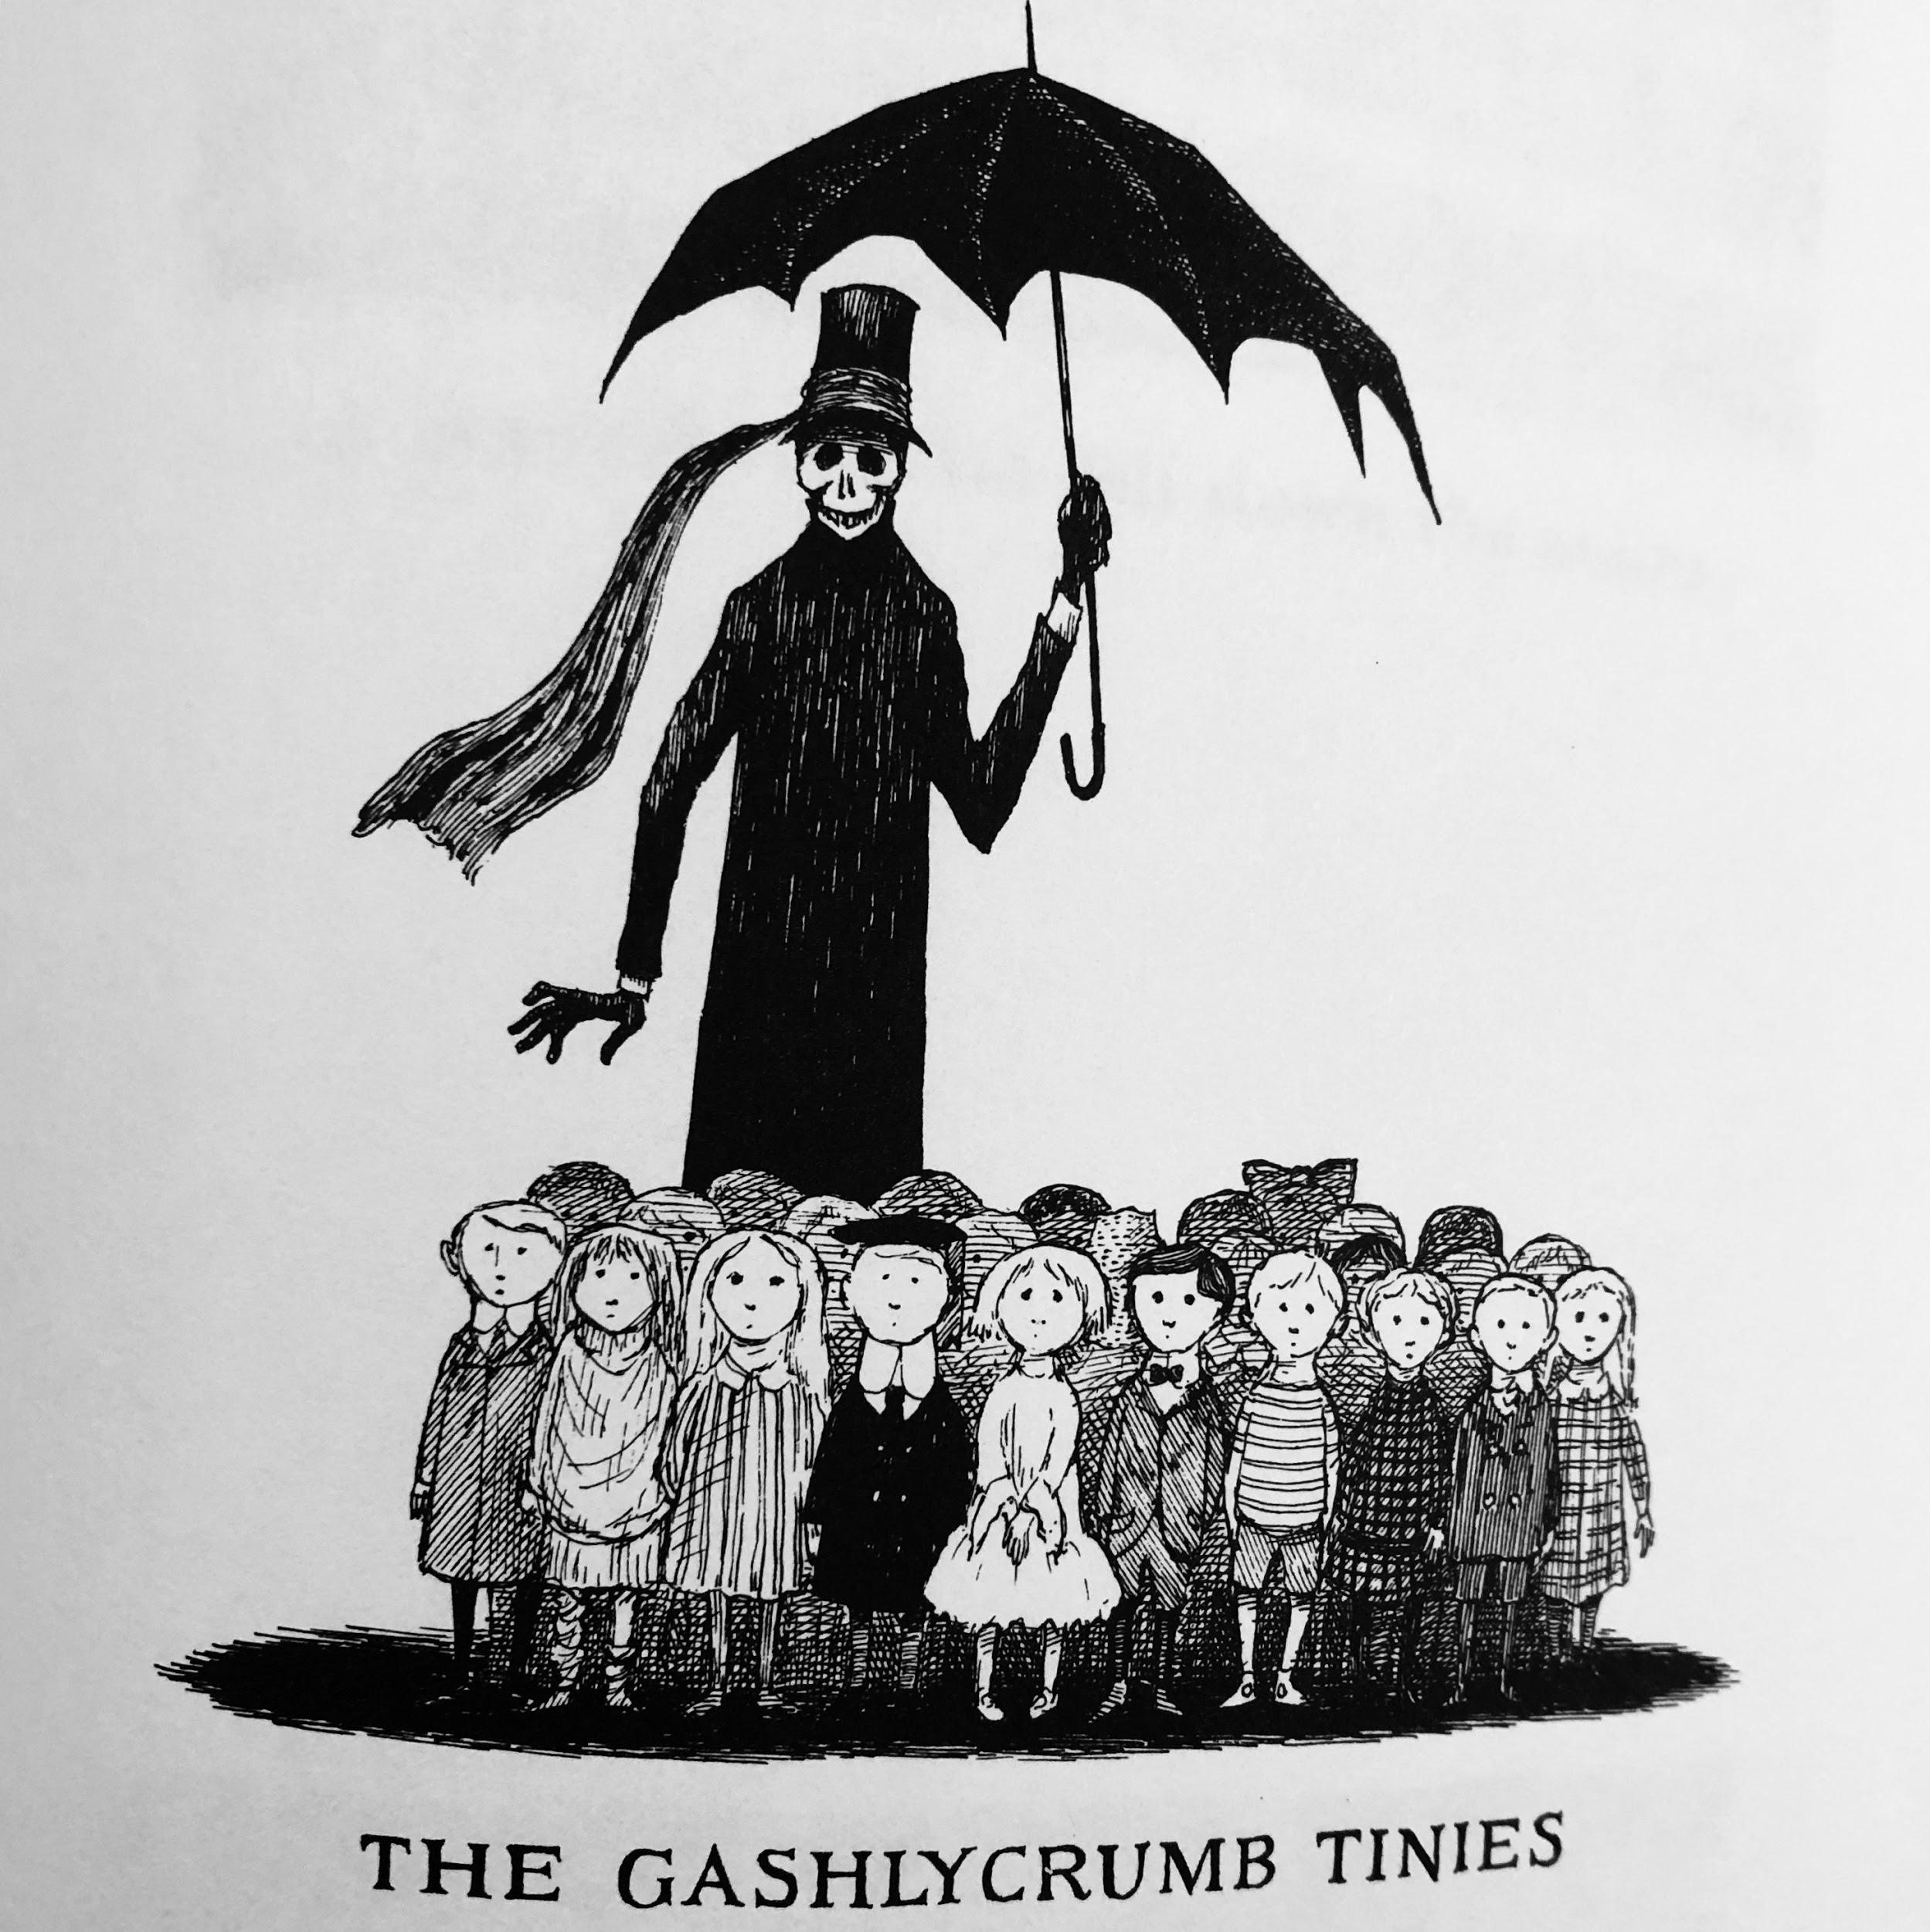 Black and white illustration of a group of children in the shadow of a tall, skeletal man titled The Gashlycrumb Tinies.